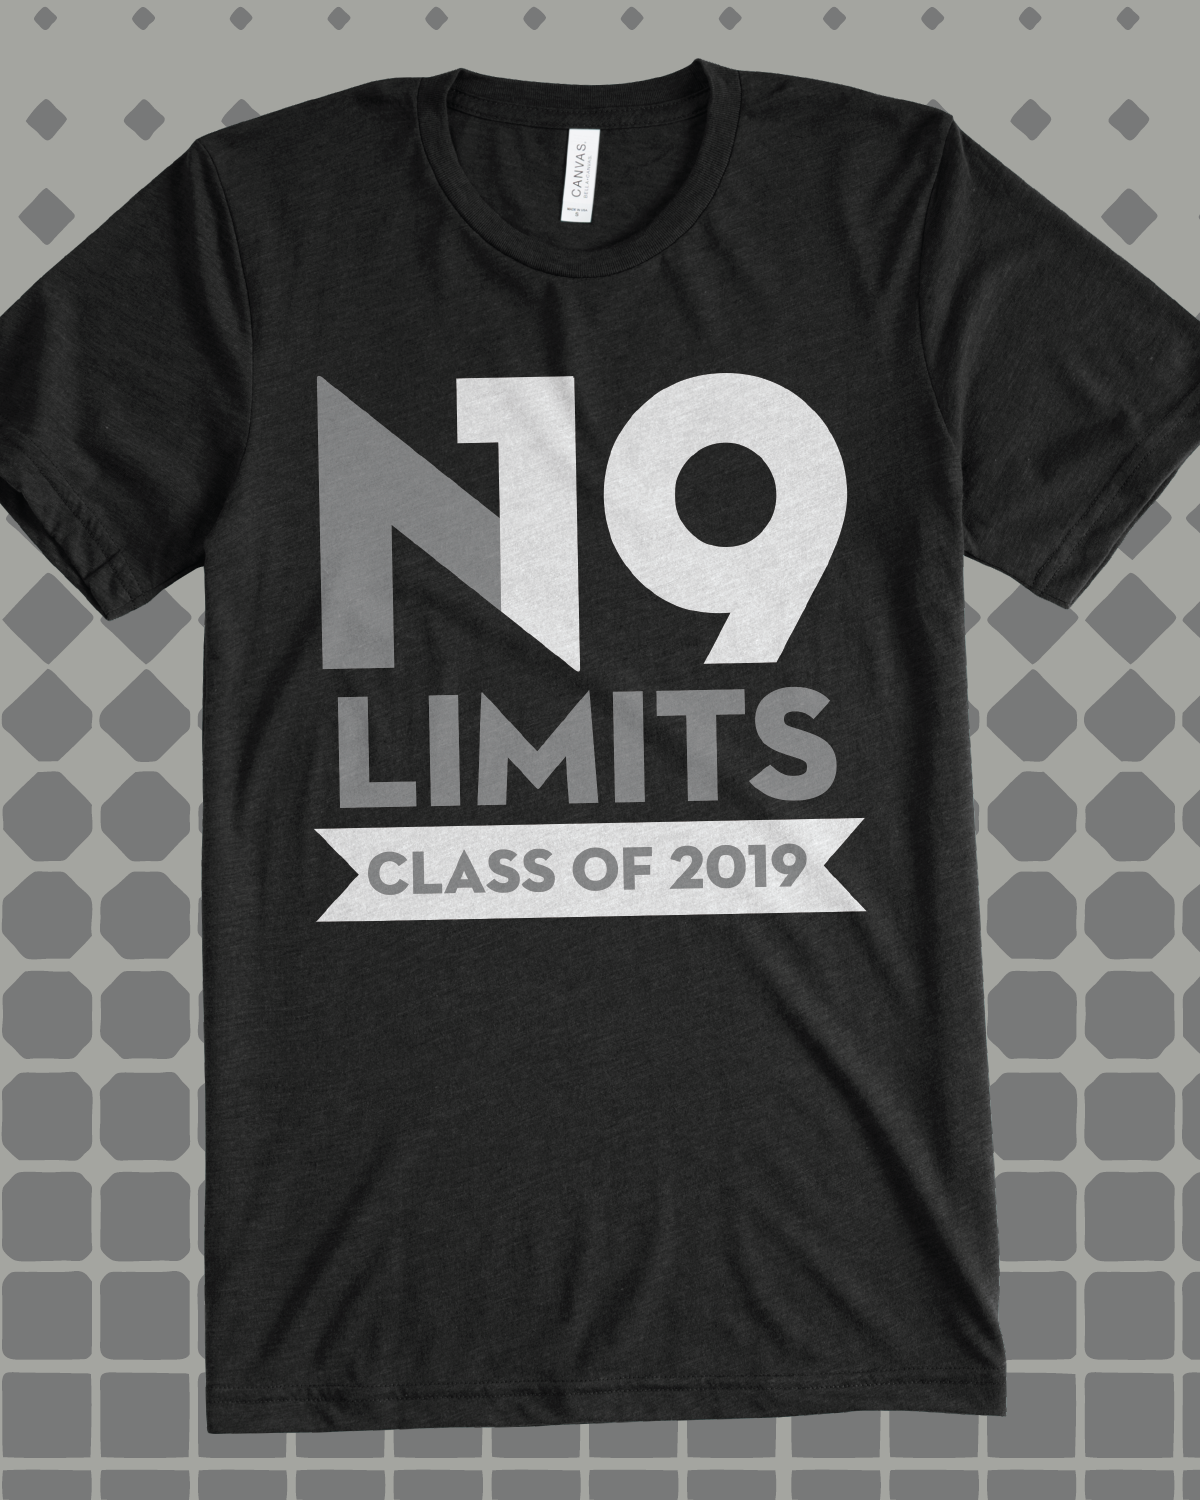 Cool Tshirt Designs For Class